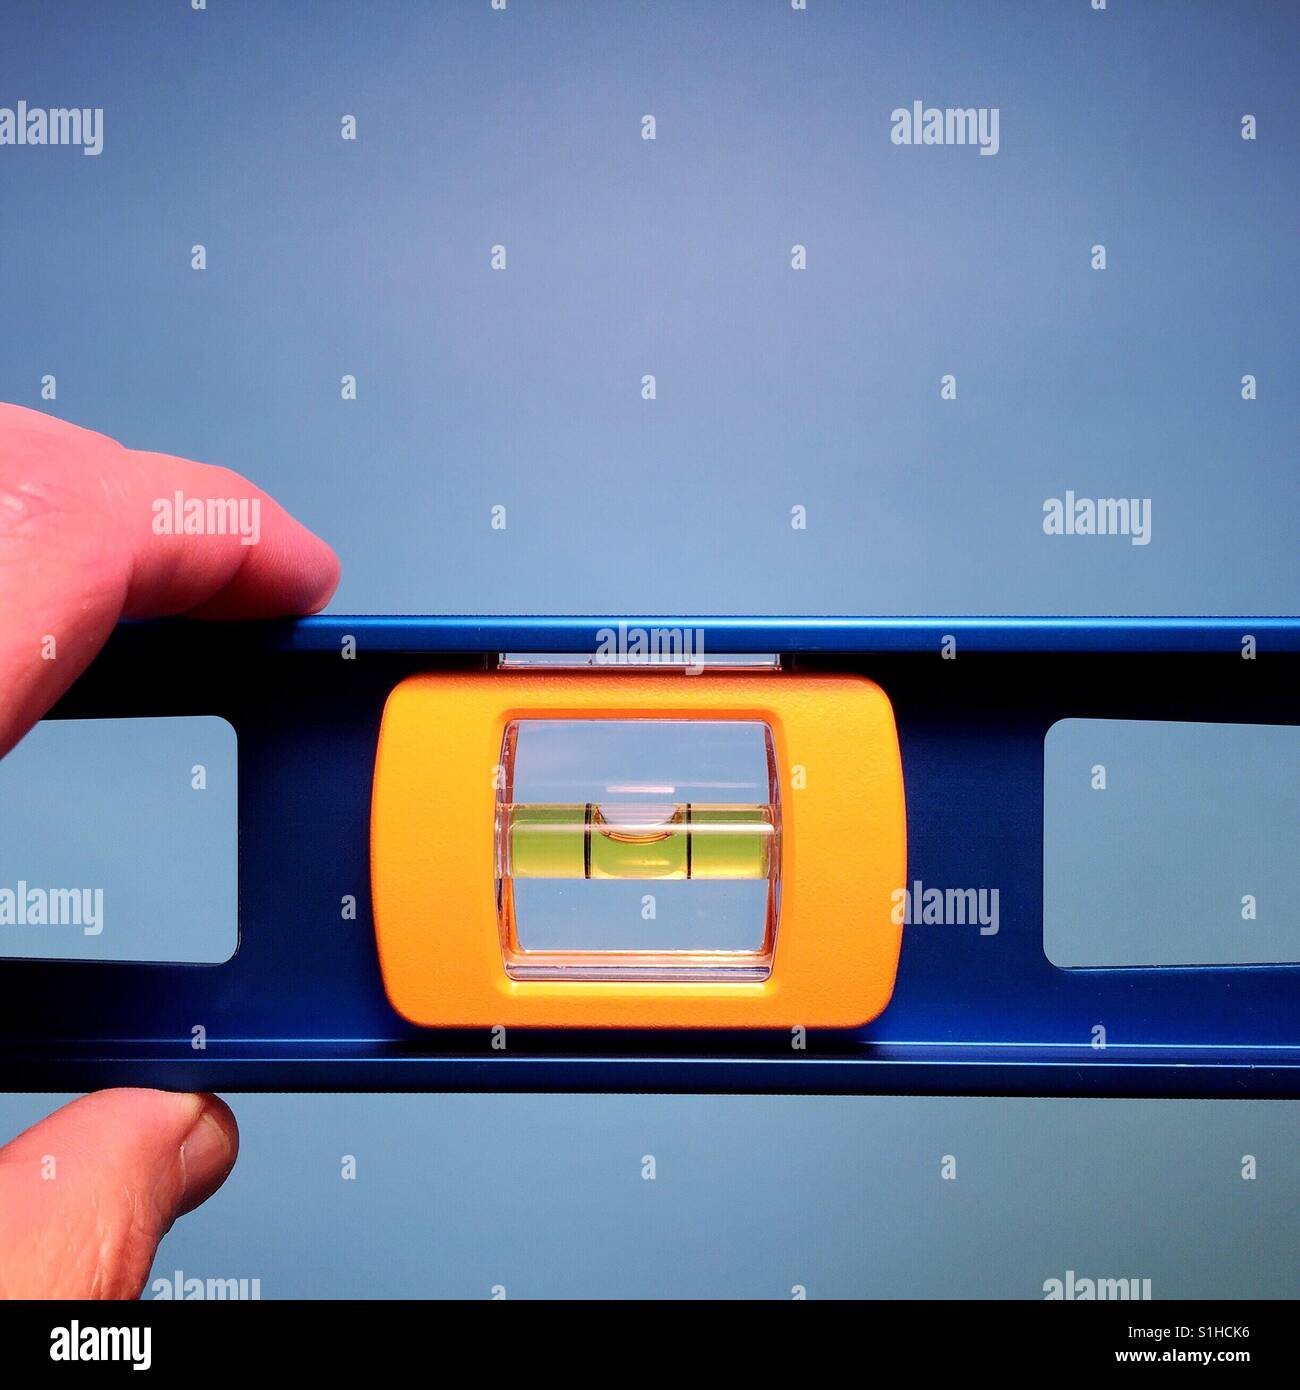 A close-up shot of a man holding a carpenter's level against a blue background - Stock Image